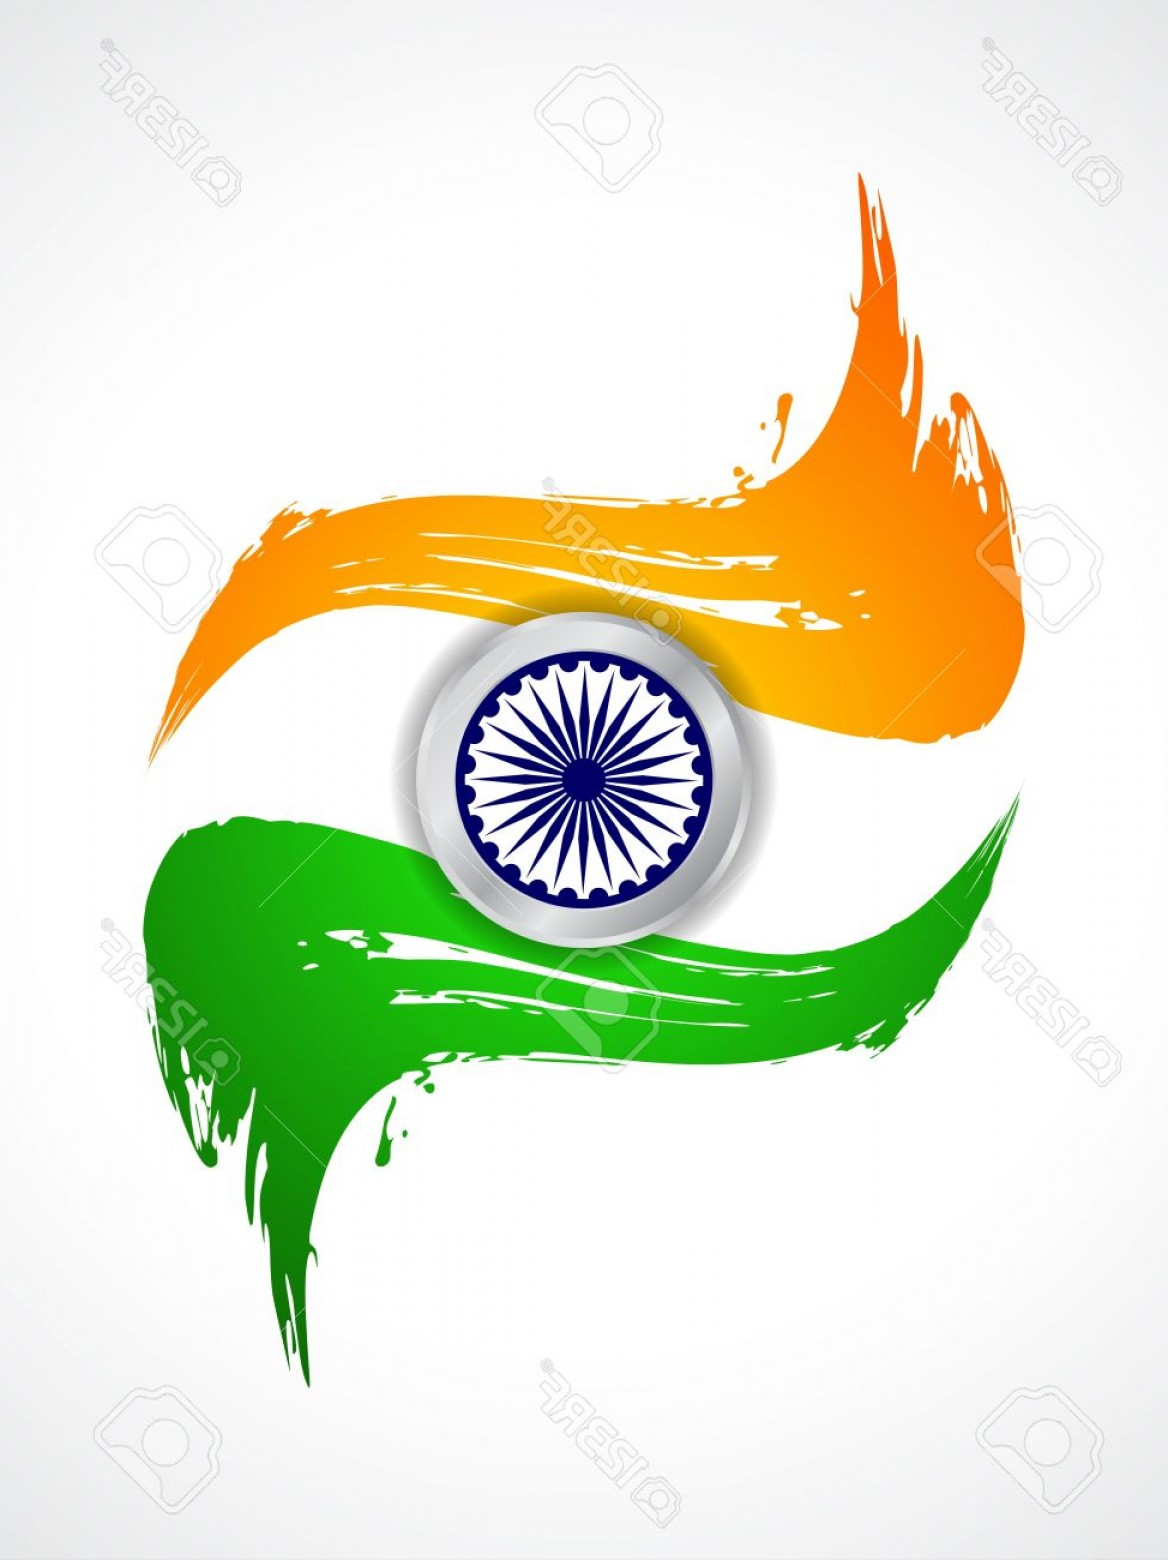 India Flag Vector: Photobeautiful Indian Flag Theme Background Design